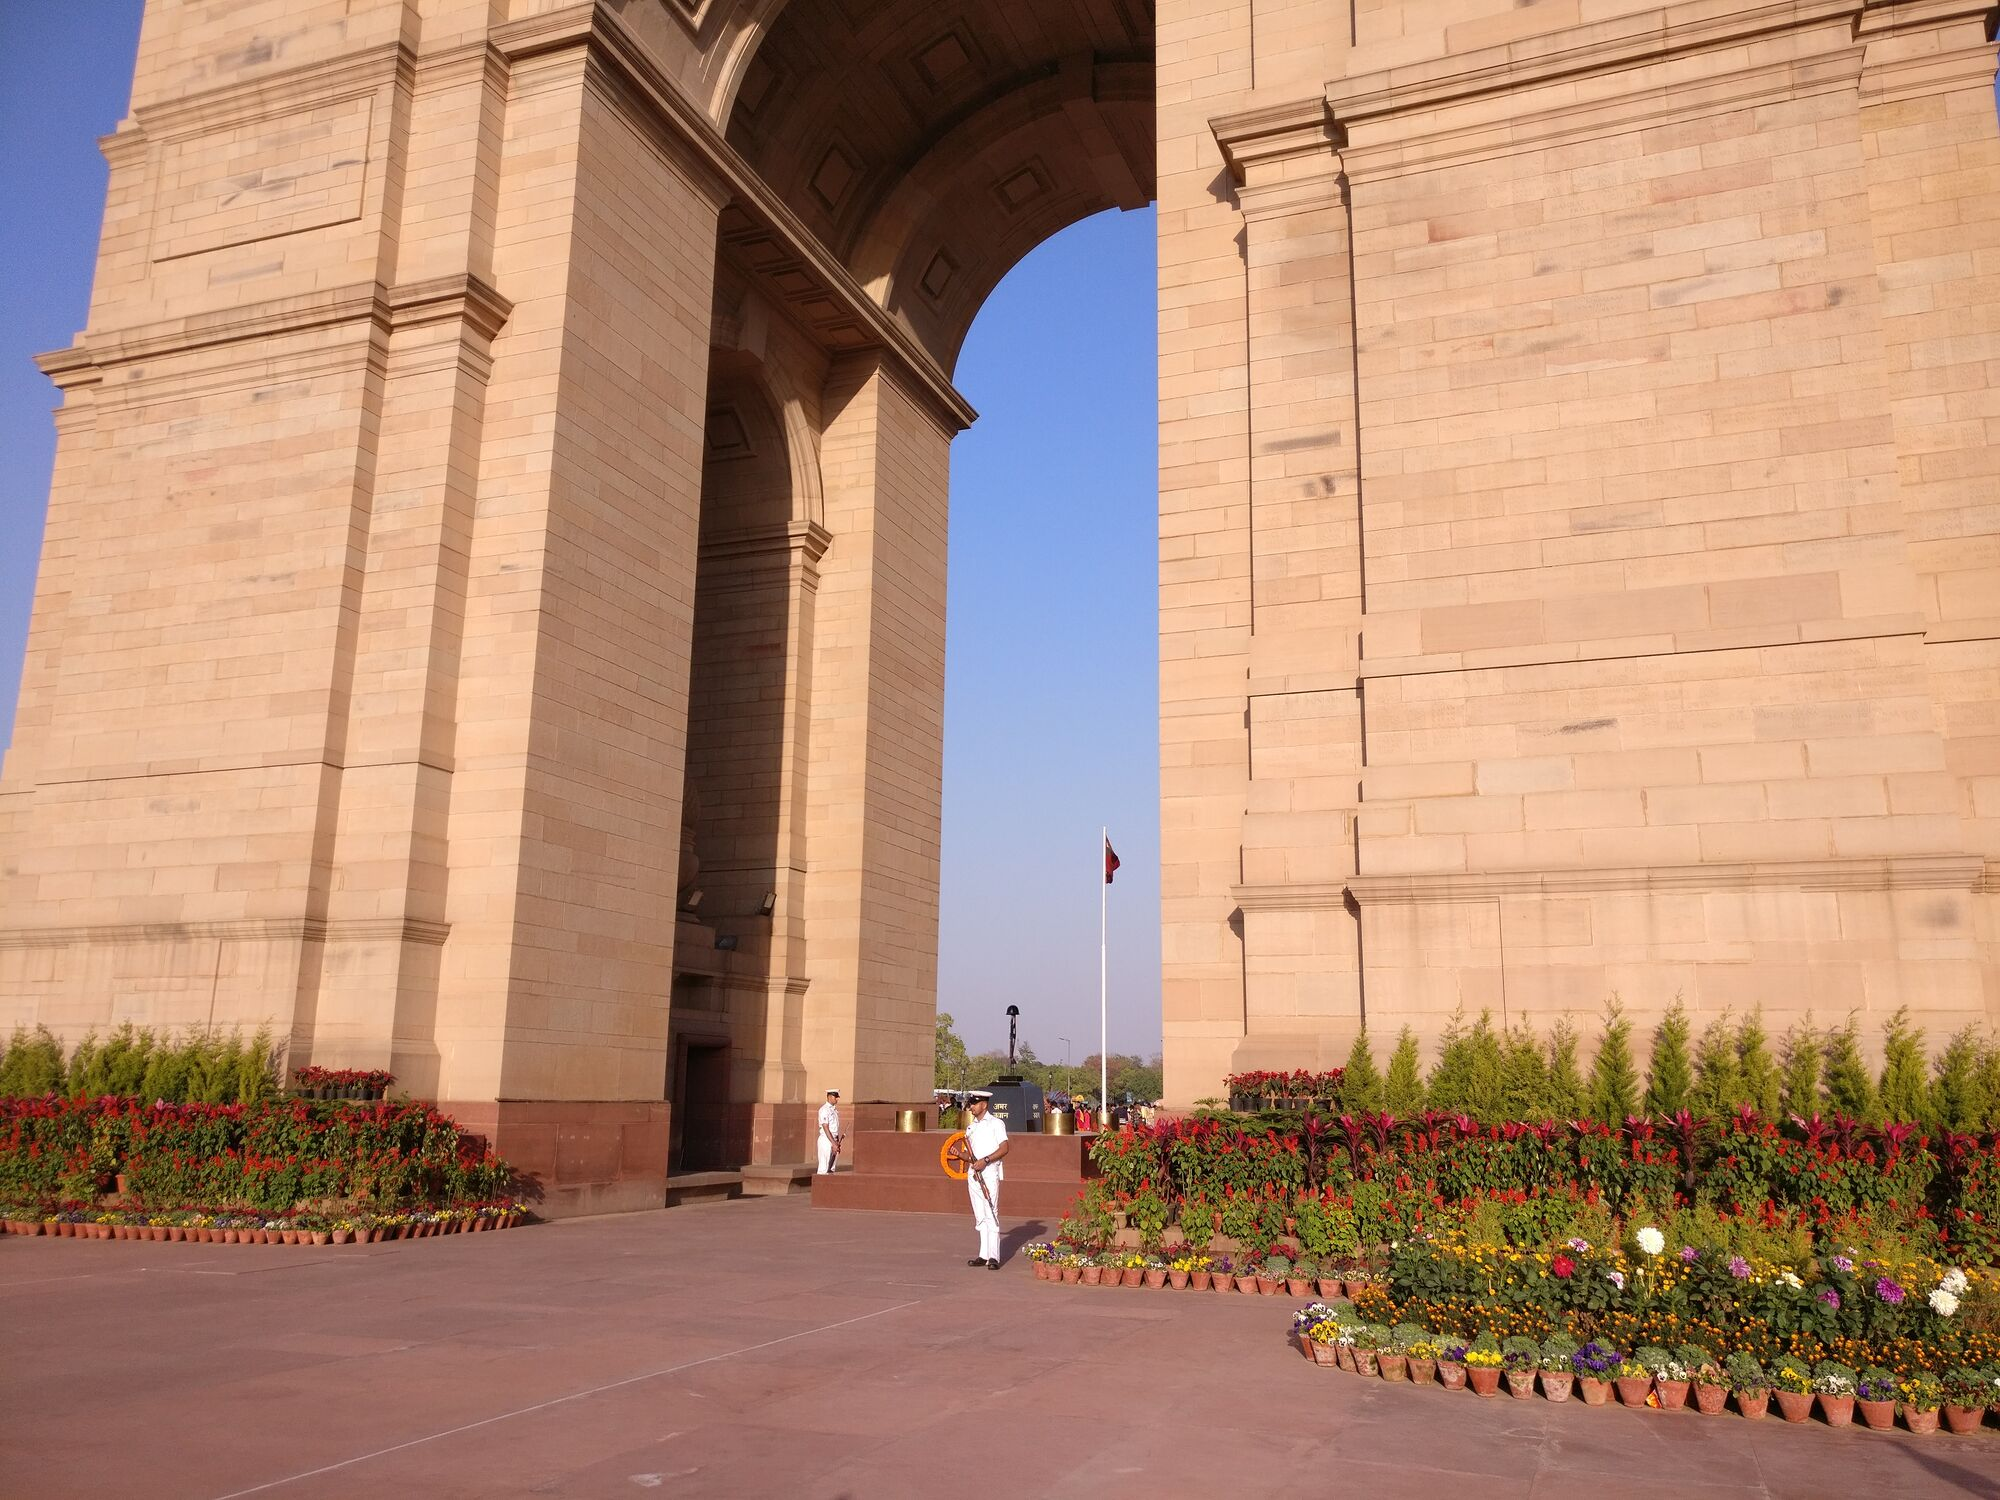 Beneath the archway, you can see Amar Jawan Jyoti (Flame of the Immortal Soldier), serving as India's tomb of the unknown soldier